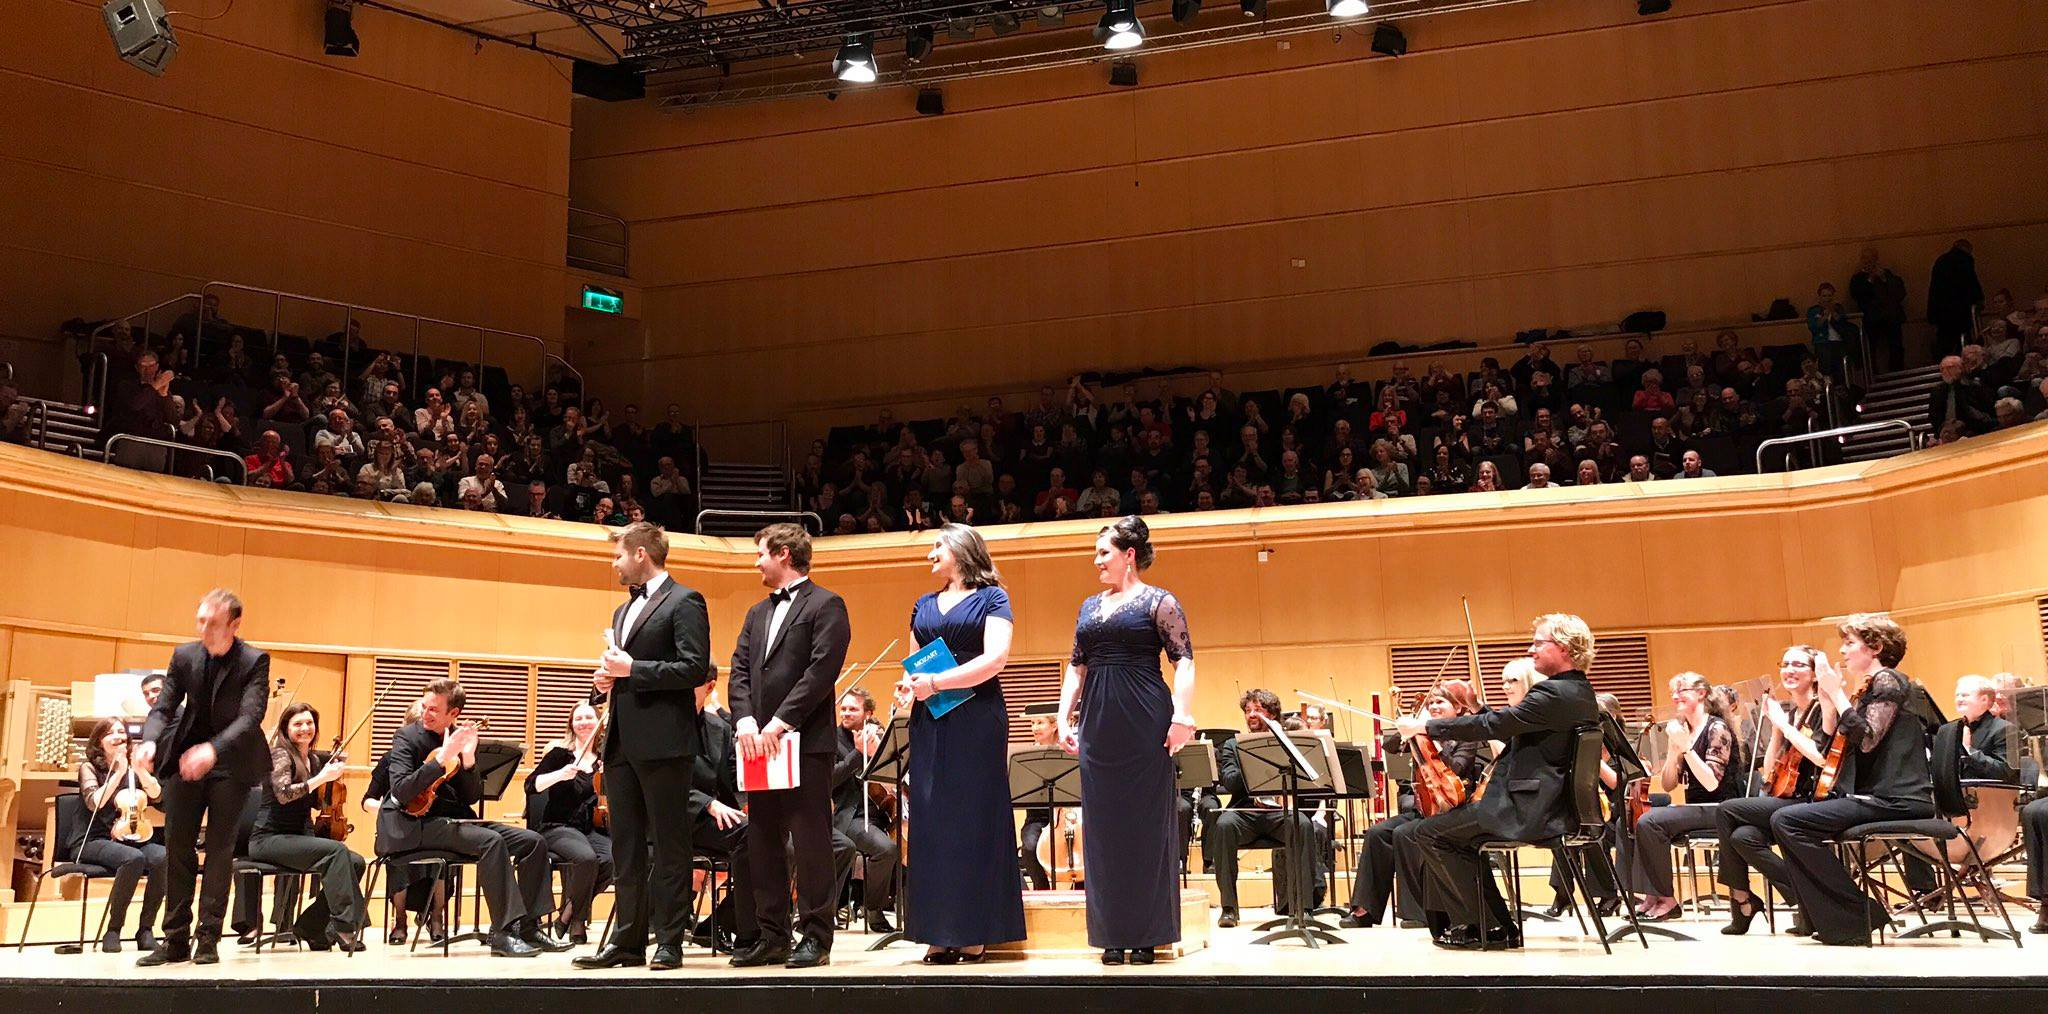 Colour photograph showing Beth Margaret Taylor, mezzo-soprano with fellow soloists on stage with the RSNO during a performance of the Mozart Requiem